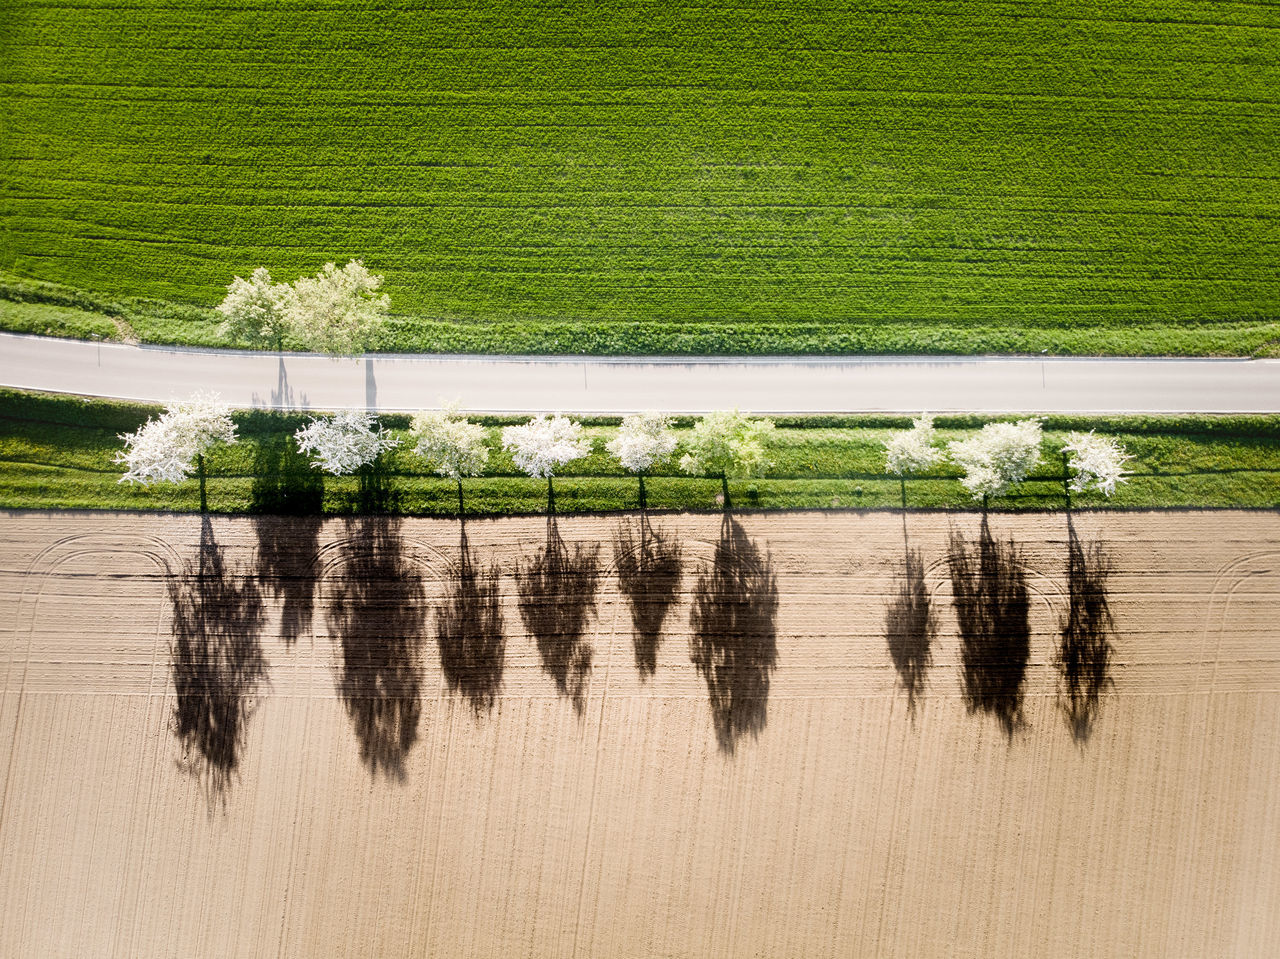 Aerial view of farm during sunny day